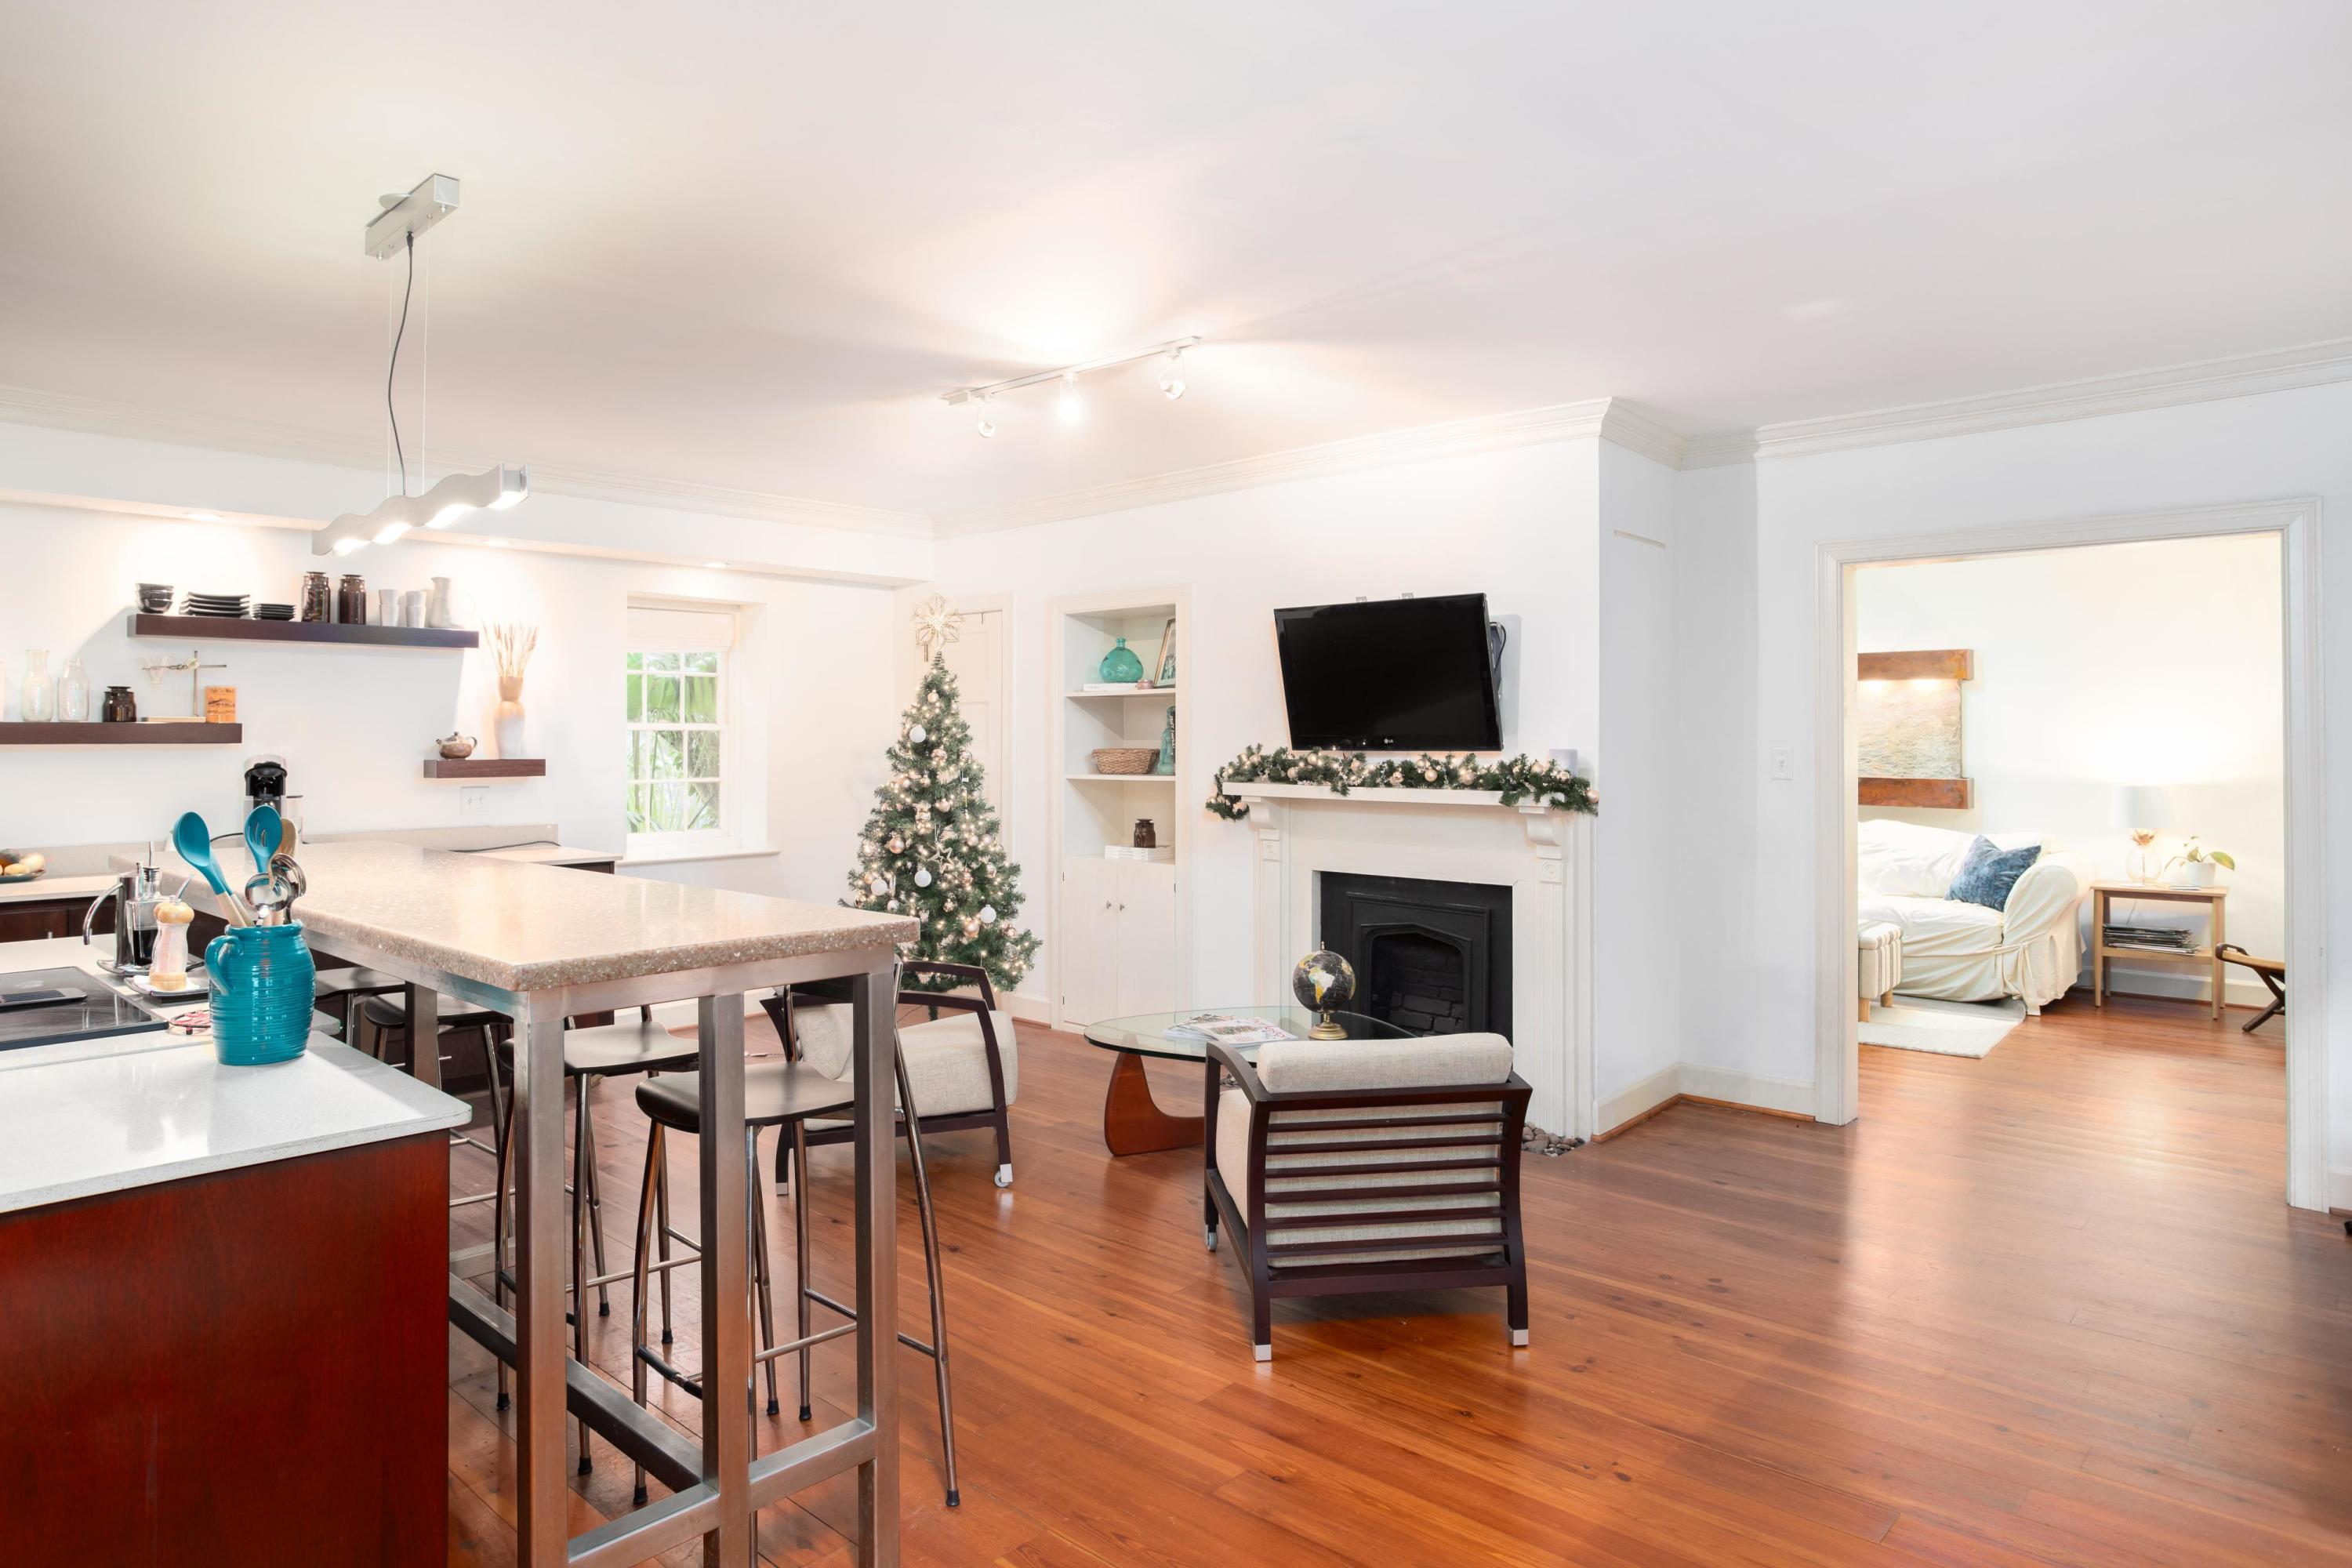 South of Broad Homes For Sale - 53 Bay, Charleston, SC - 7